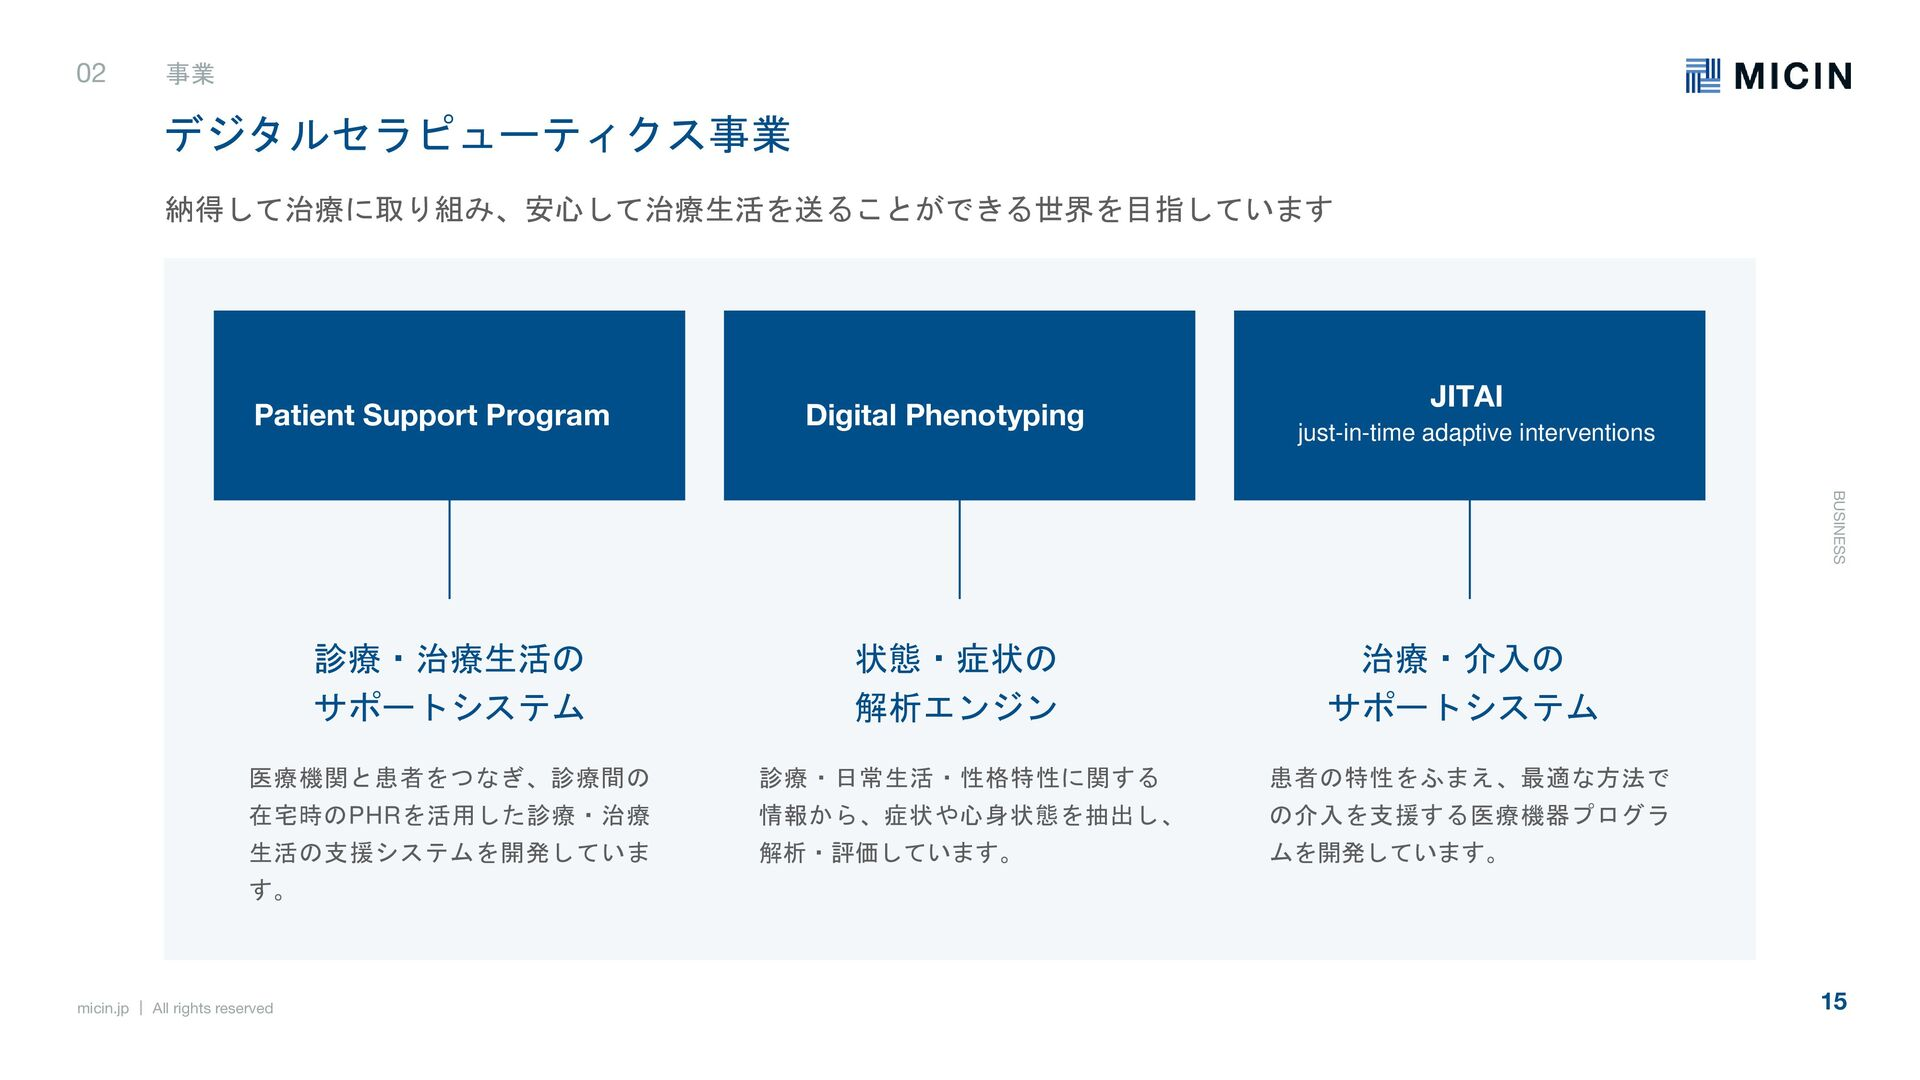 micin.jp   All rights reserved 15 事業 BUSINESS 事...